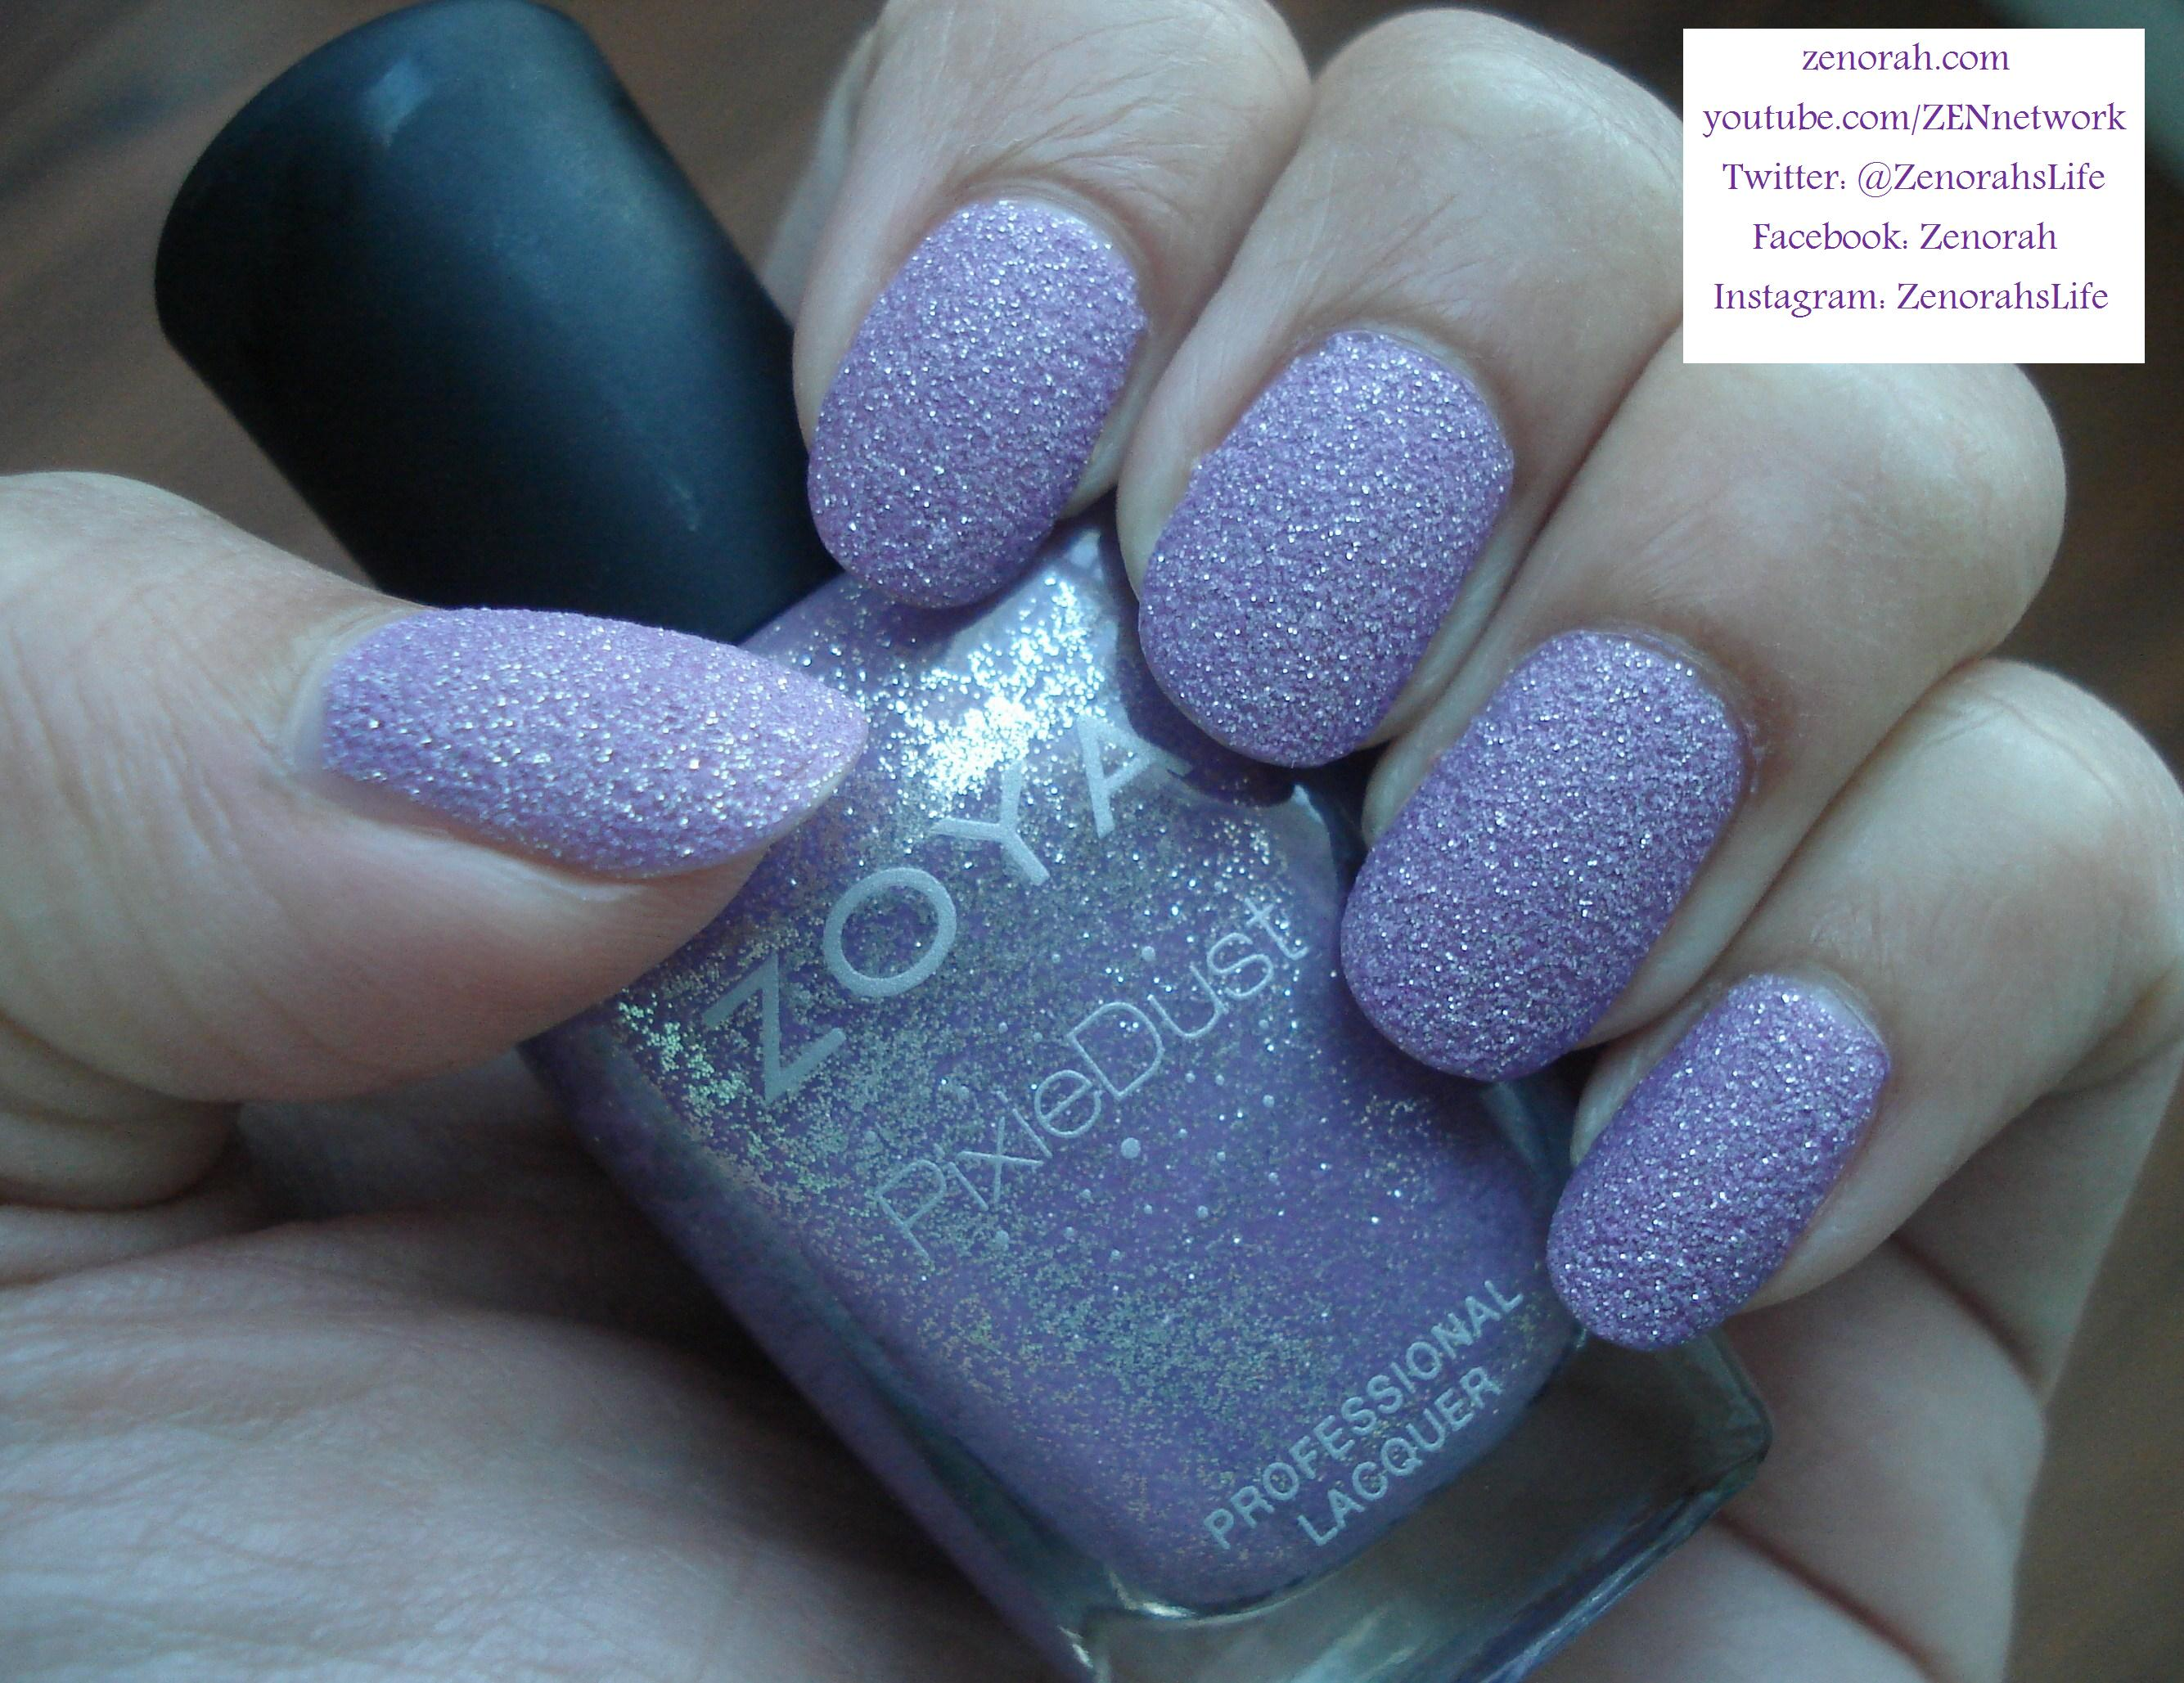 Zoya Stevie Is A Gorgeous Lilac Polish Infused Within Zoyas Pixie Dust Formulation From Their Summer Collection 2013